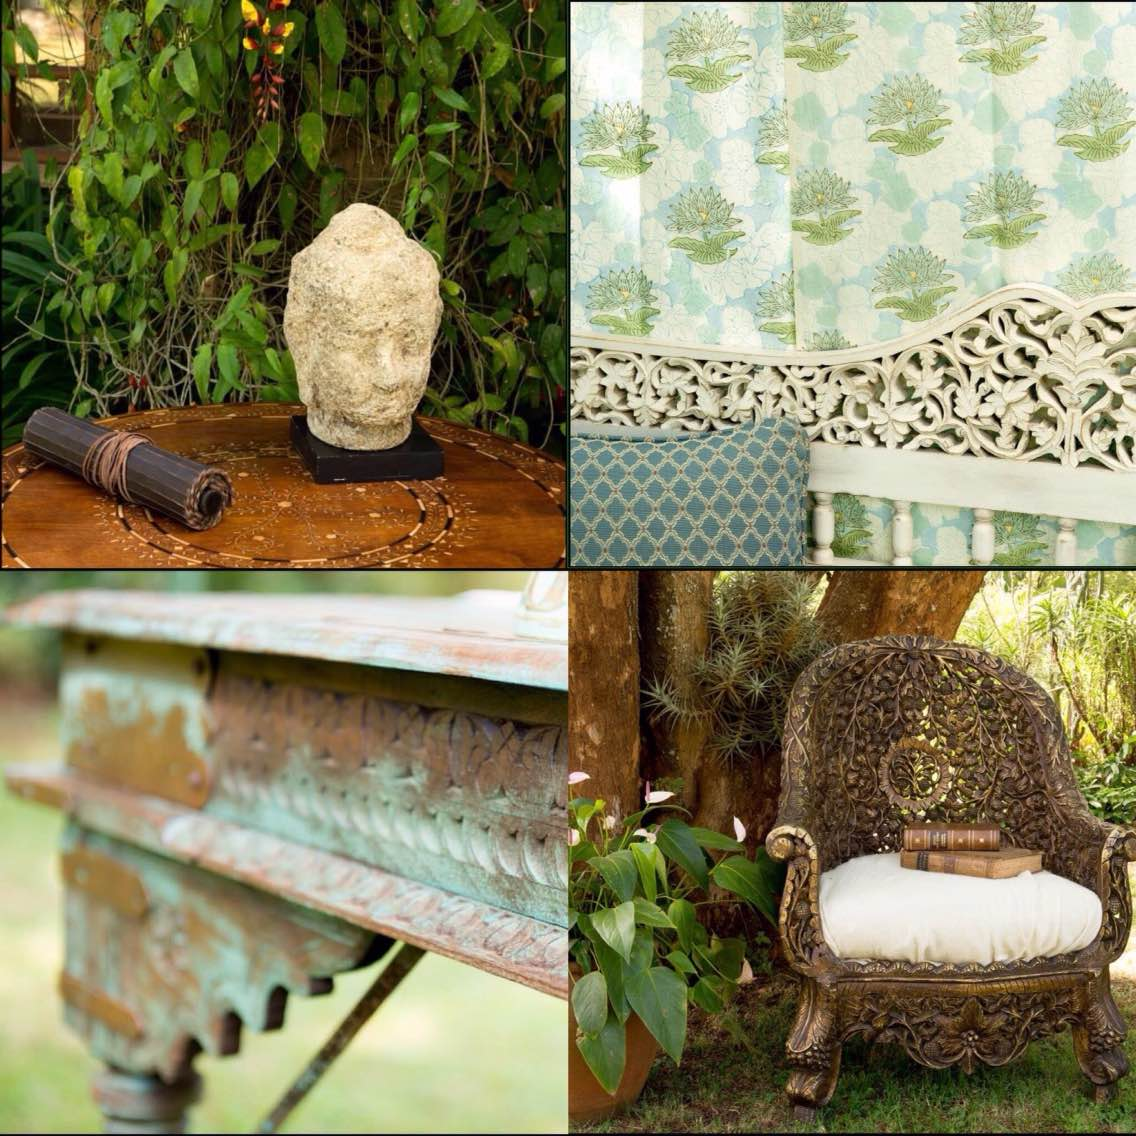 Looking for furniture and home decor  House of Treasures Emporium has a  stunning collection from India  Indonesia  Morocco  Mexico  South Africa    Kenya. Looking for furniture and home decor  House of Treasures Emporium